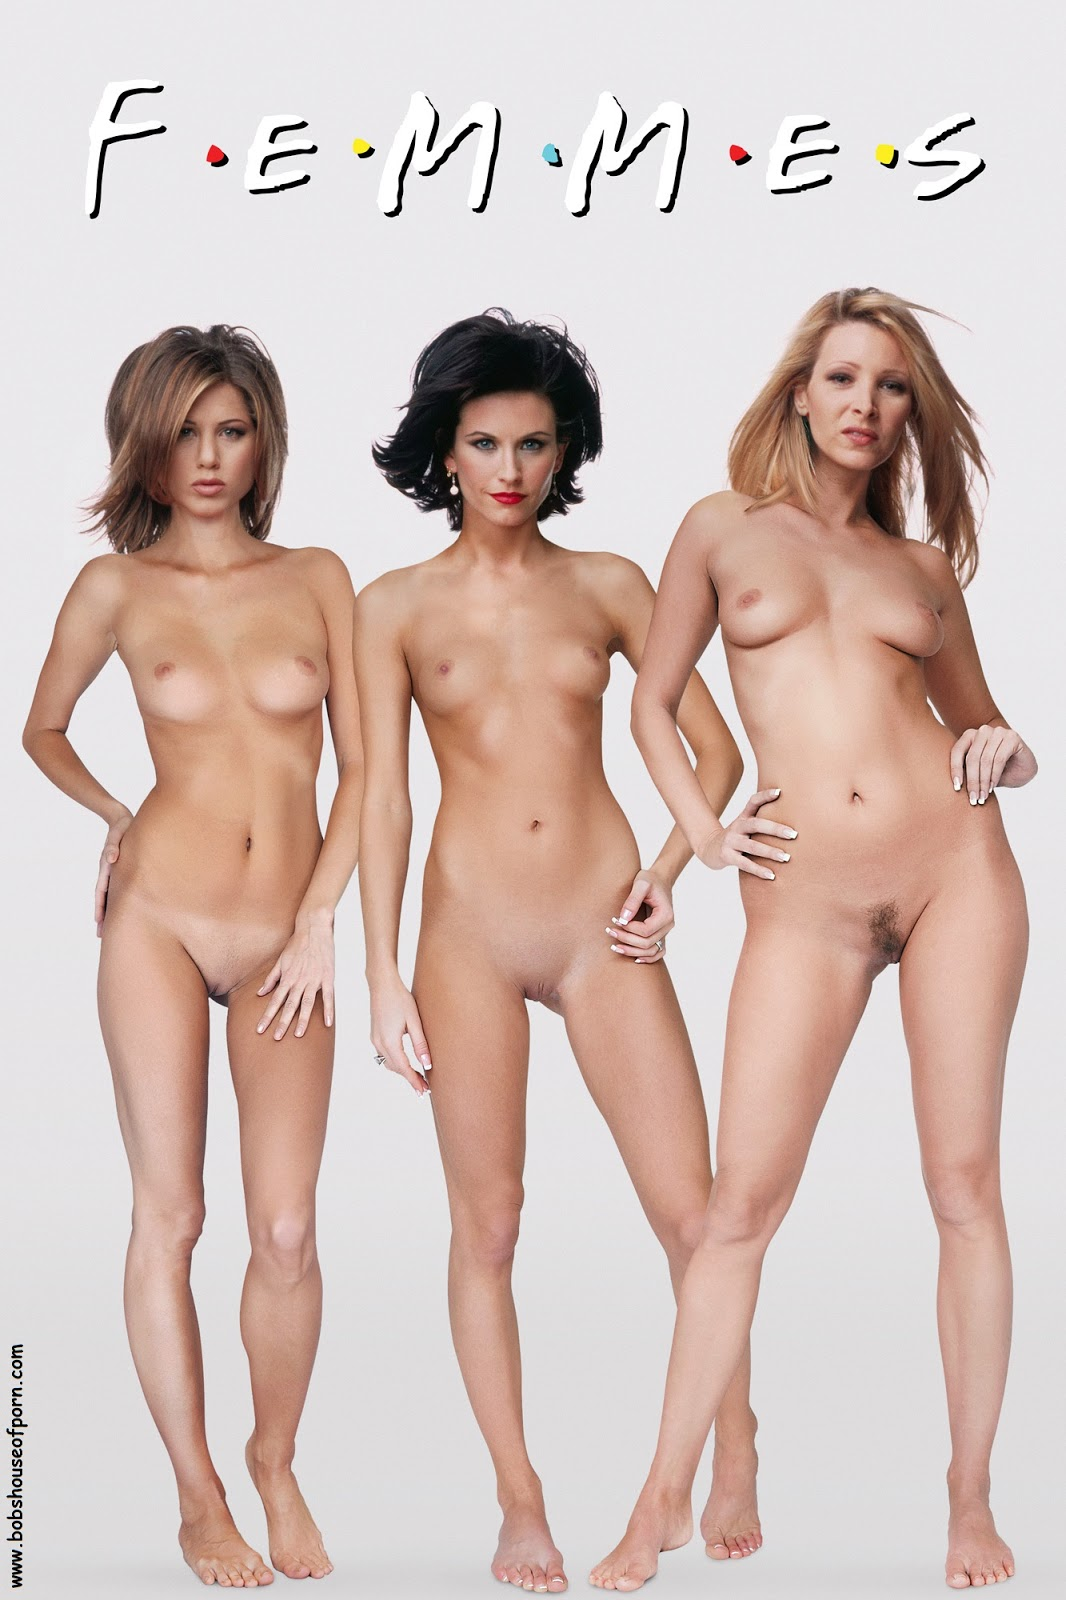 friends actresses full frontal nude pics